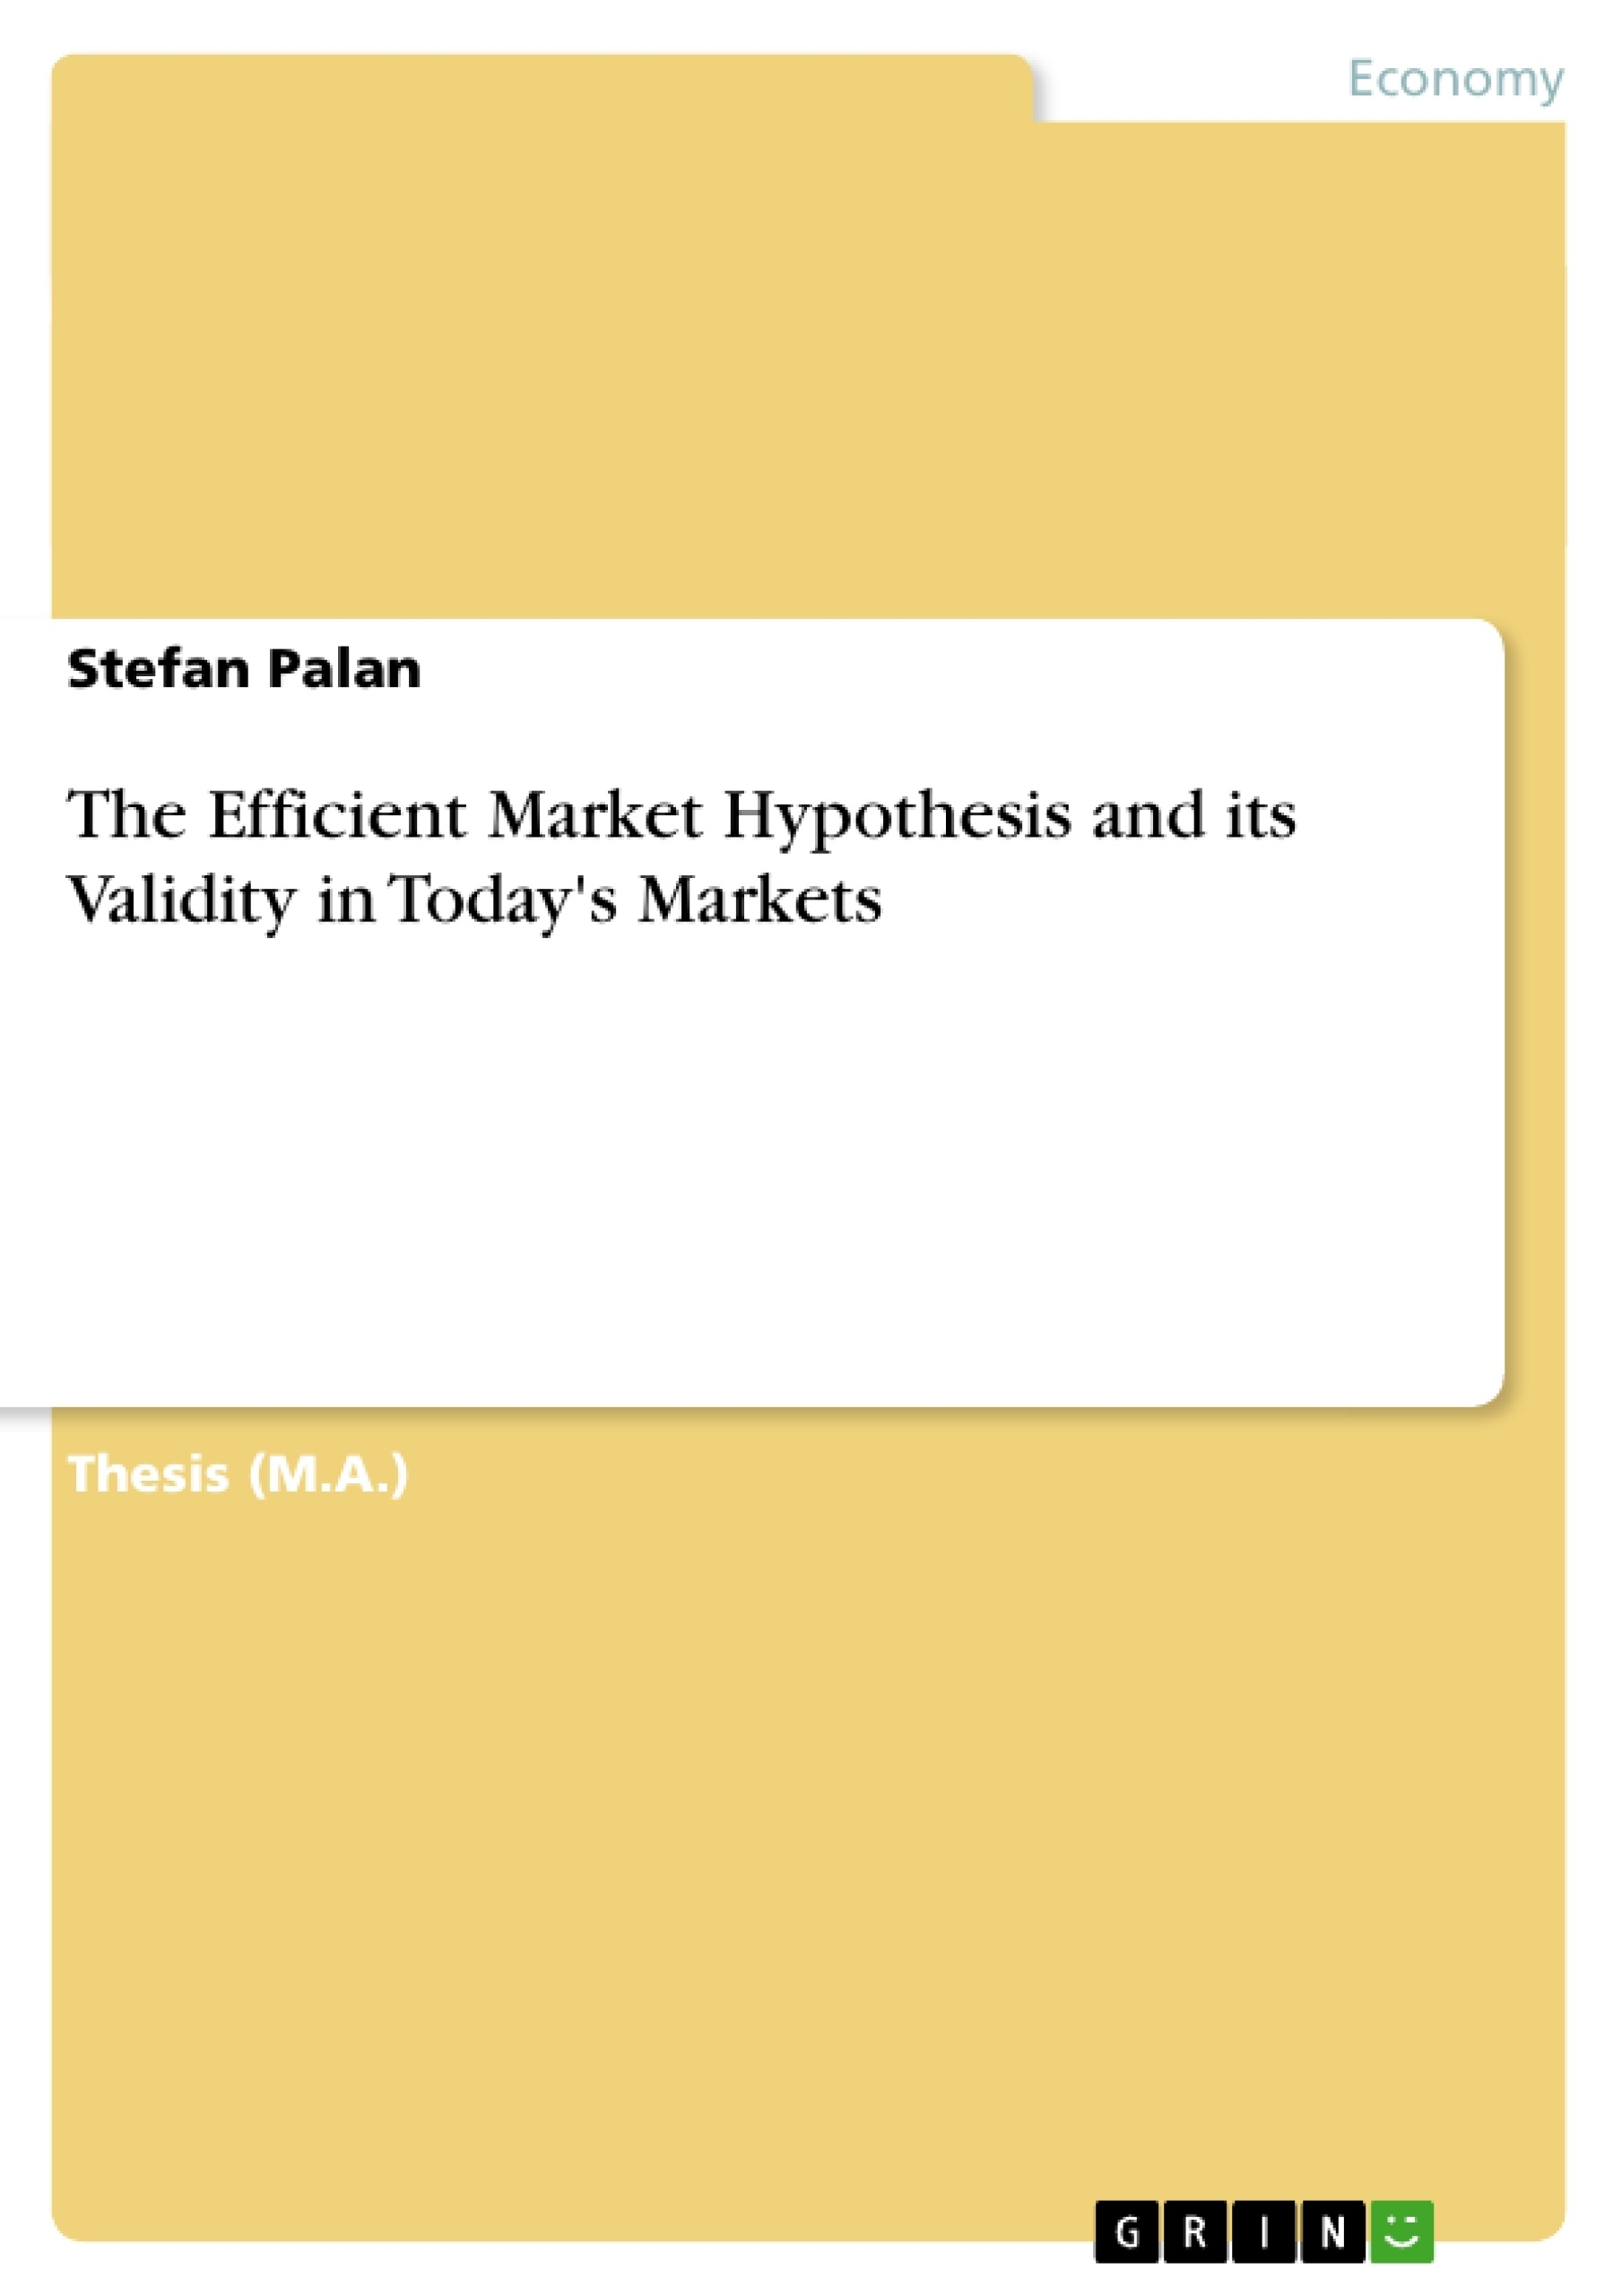 Title: The Efficient Market Hypothesis and its Validity in Today's Markets